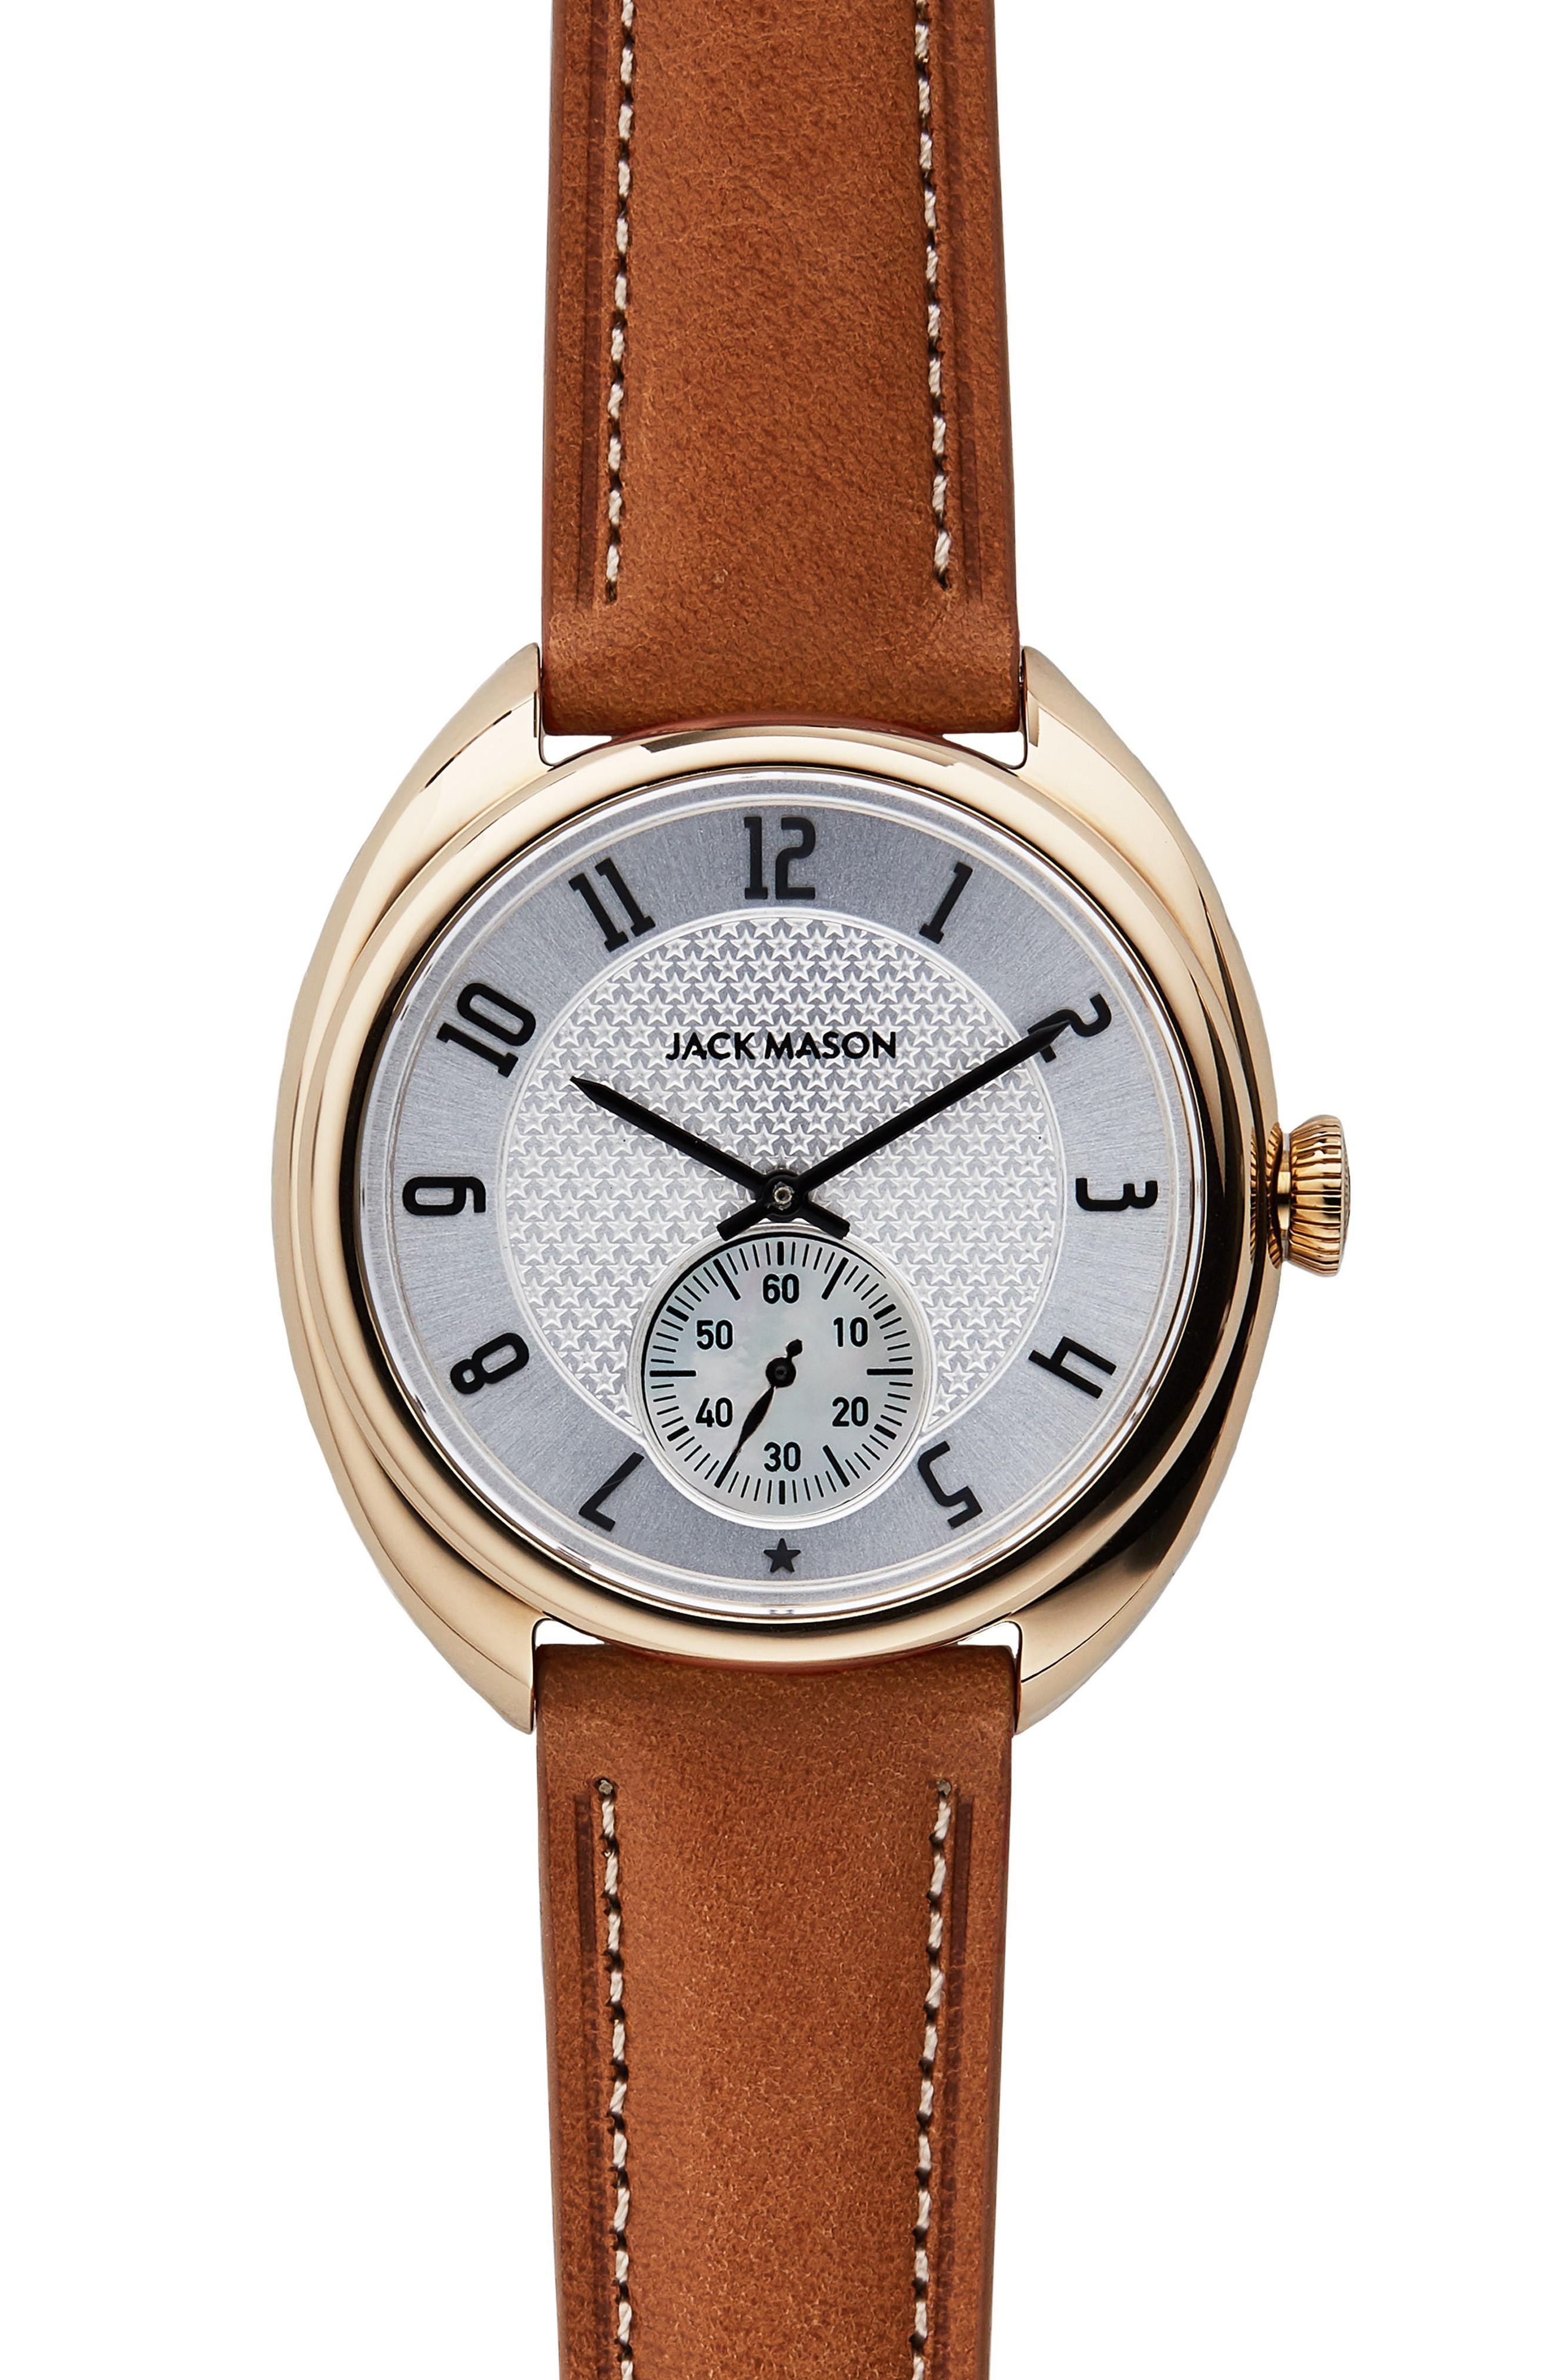 Jack Mason Issue No. 1 Leather Strap Watch, 41mm In Tan/ White/ Gold